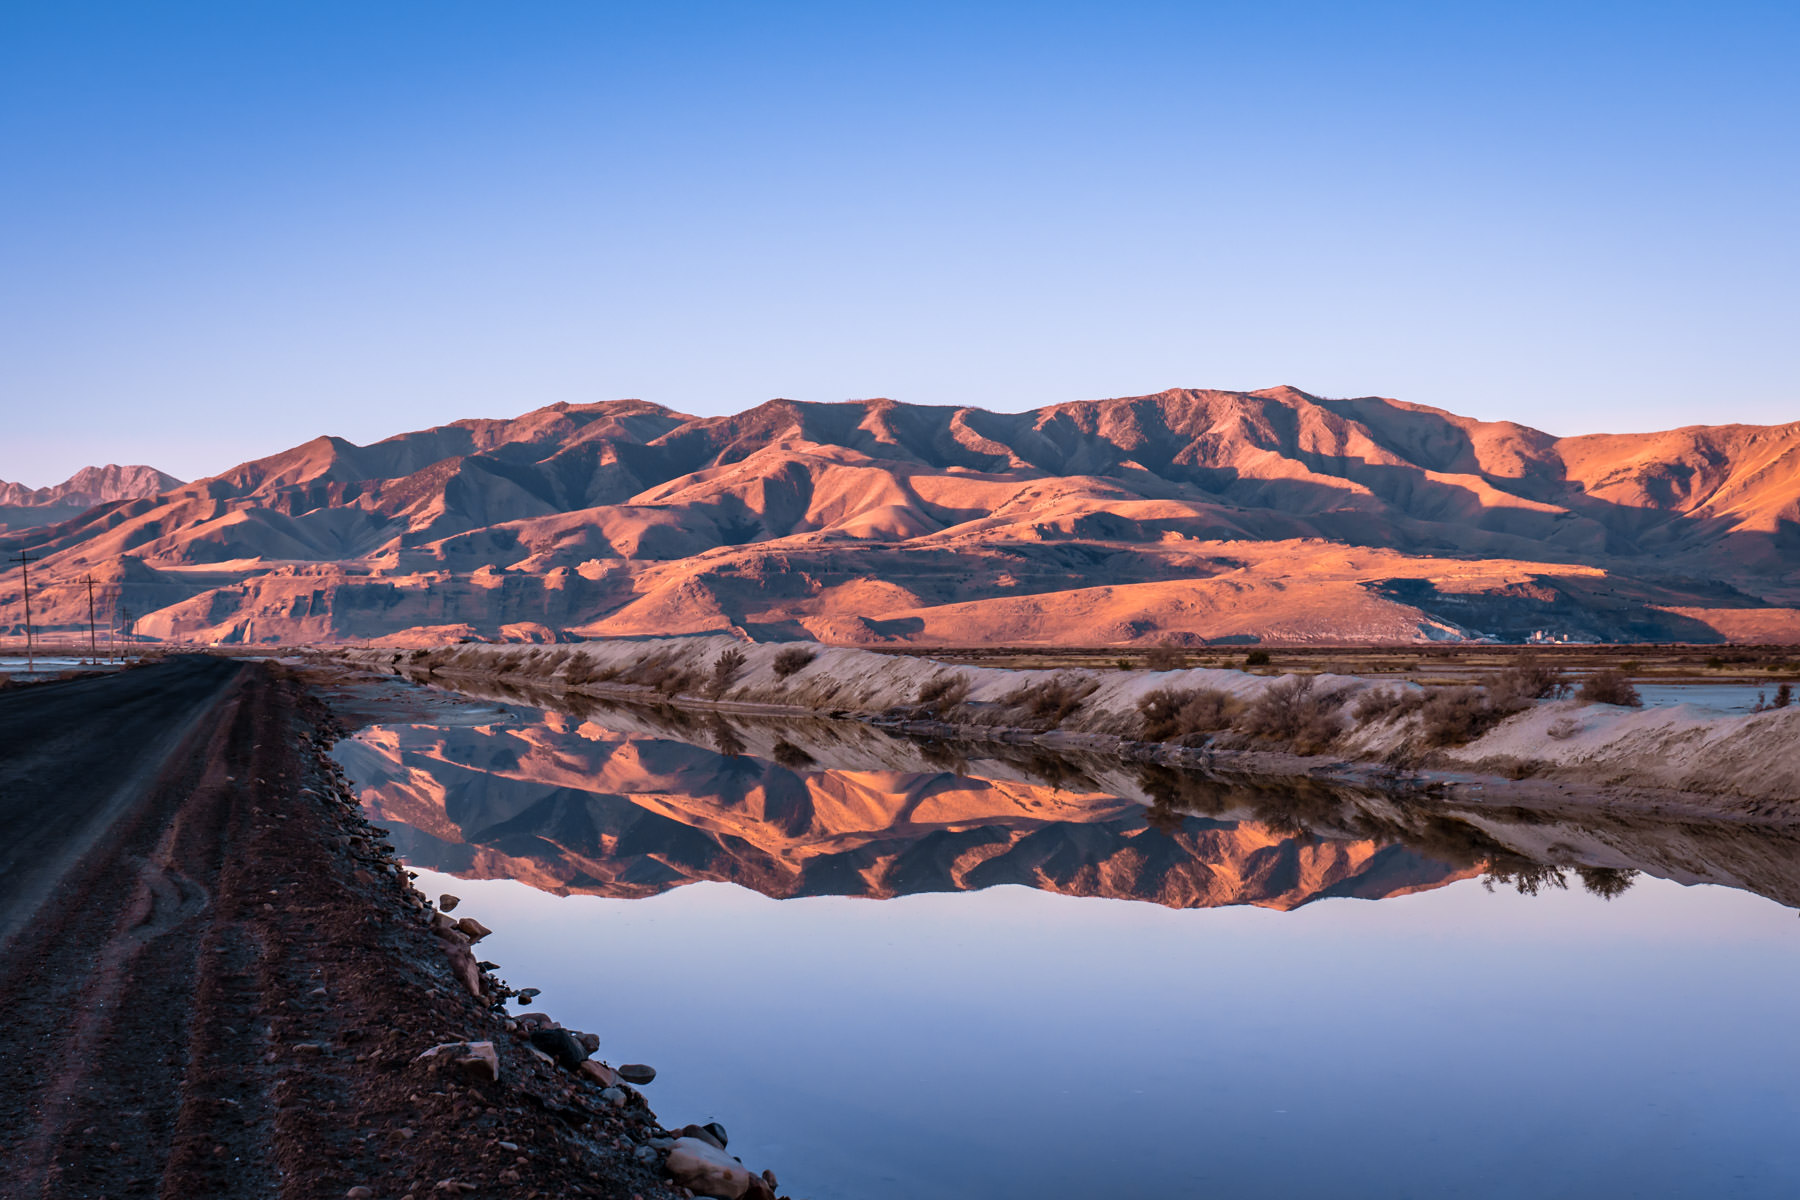 Mountains near Utah's Stansbury Island reflect in a still roadside pond.